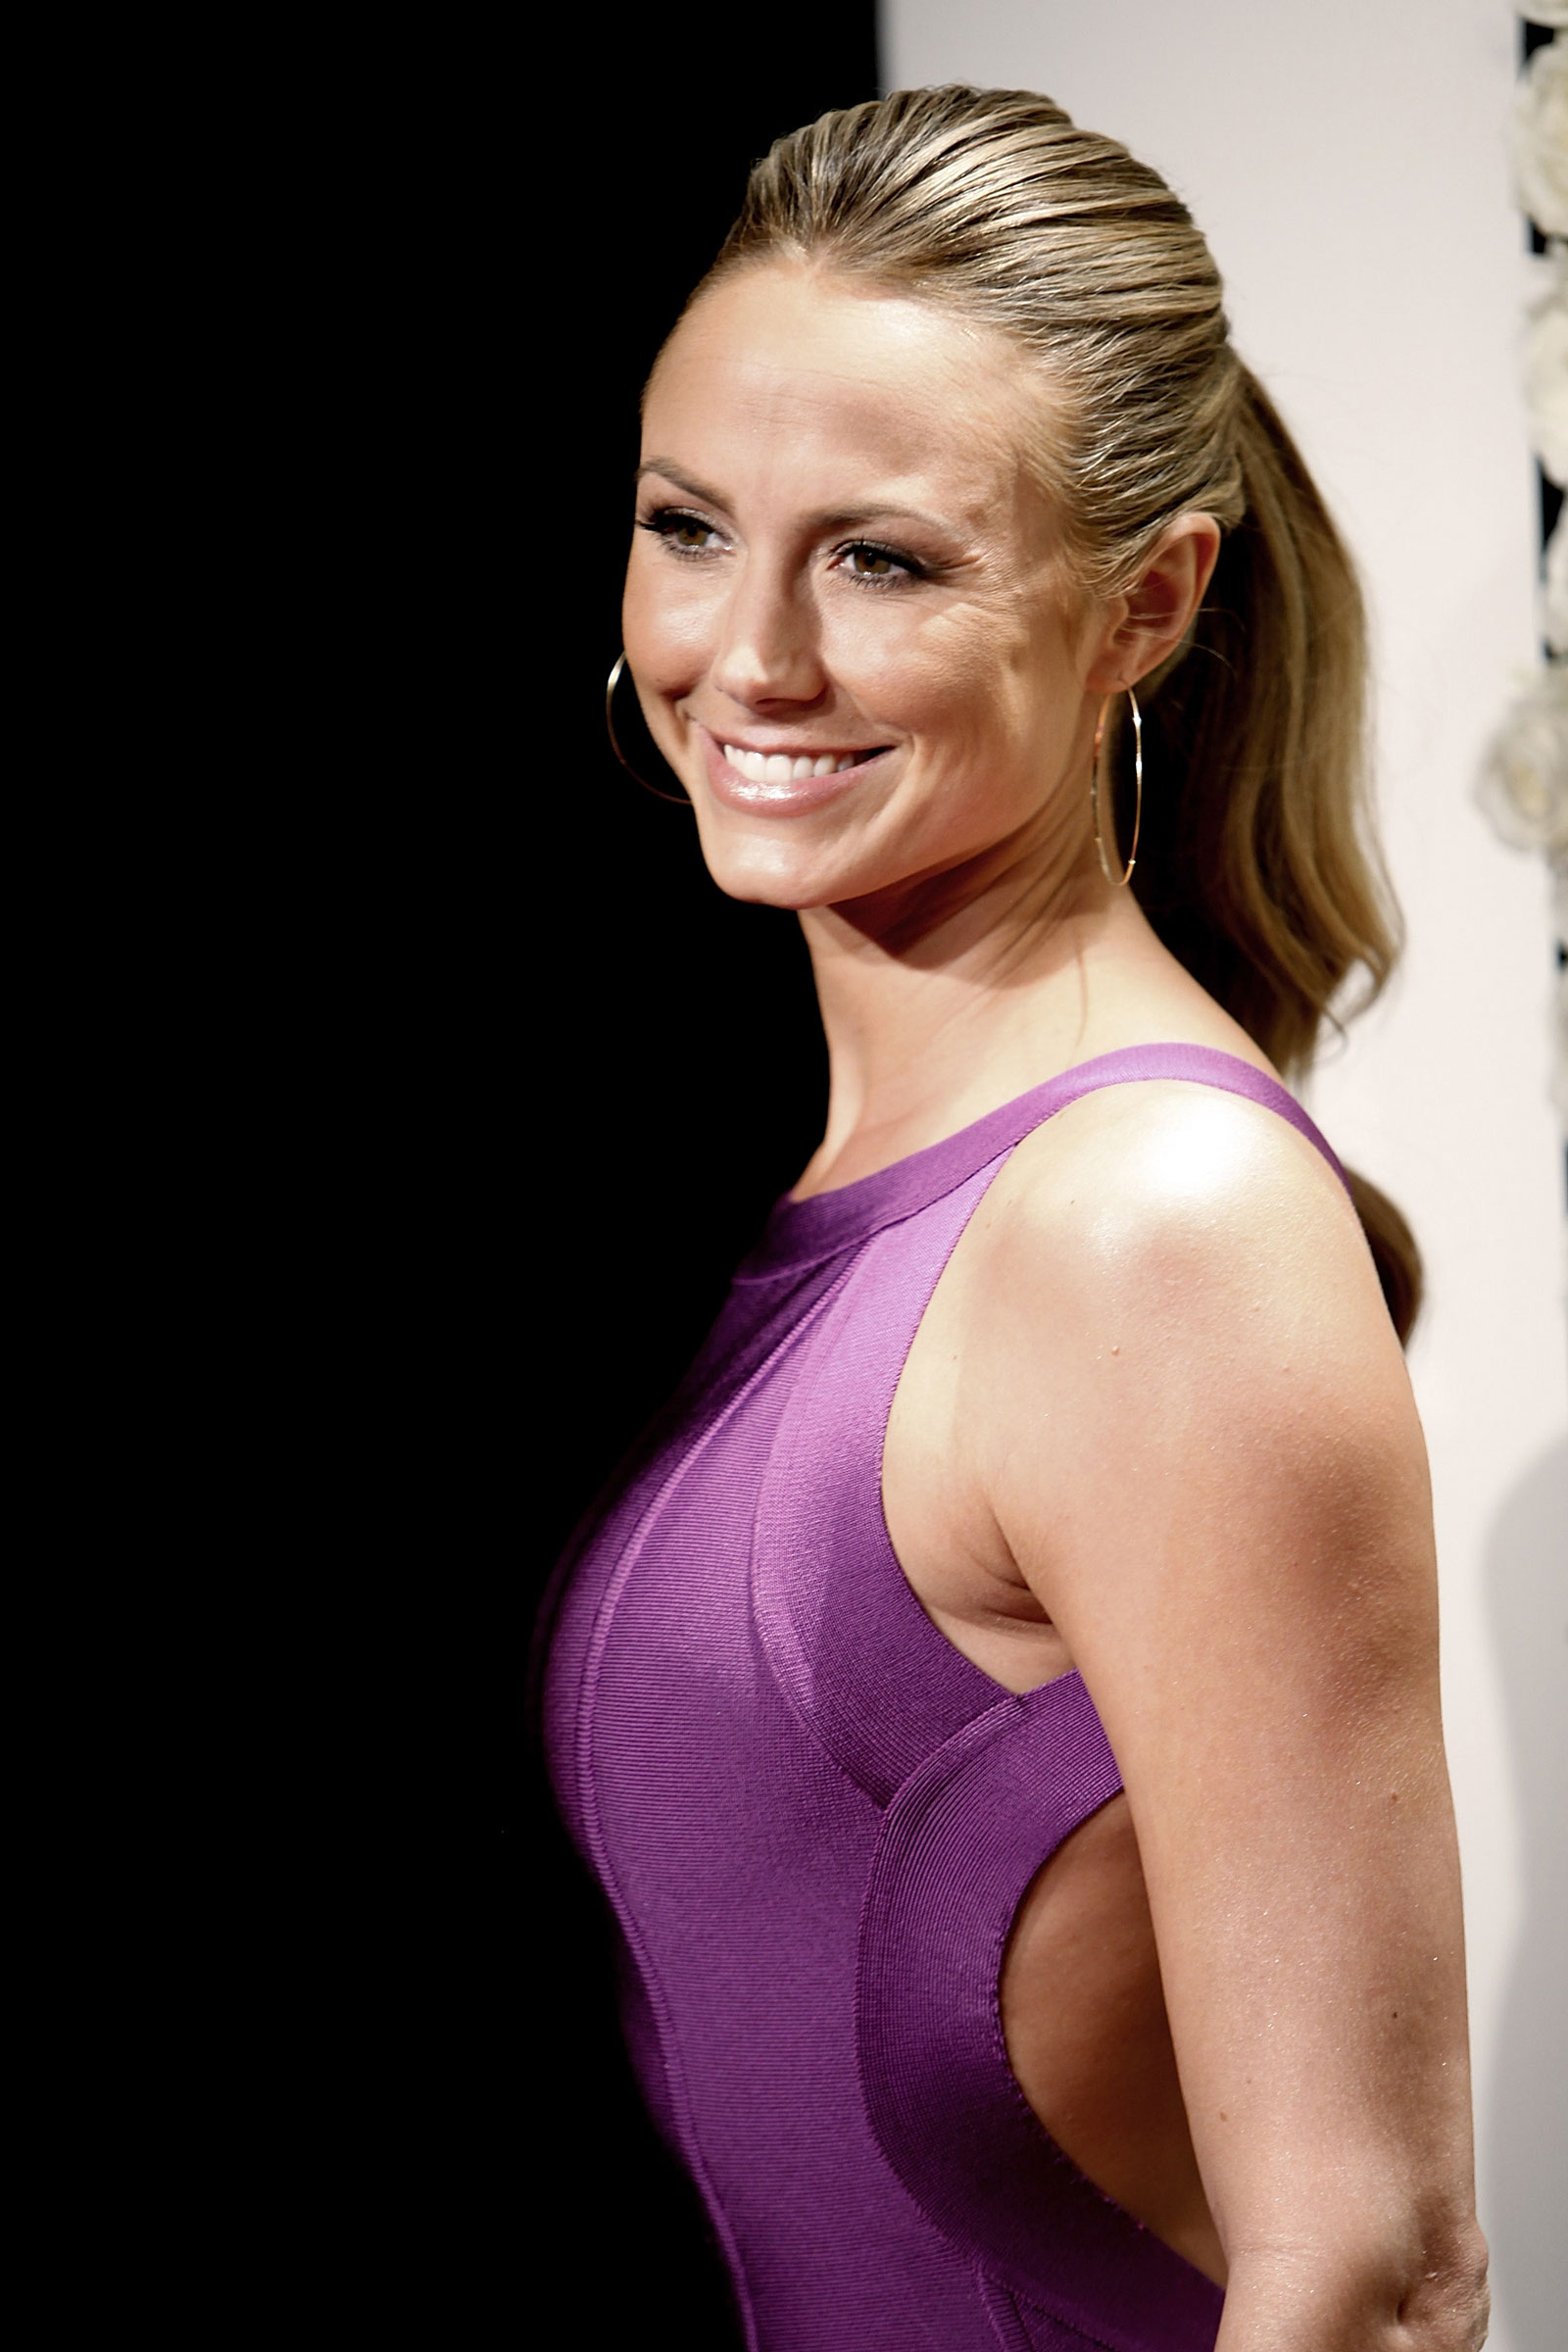 stacy keibler picture - photo #15